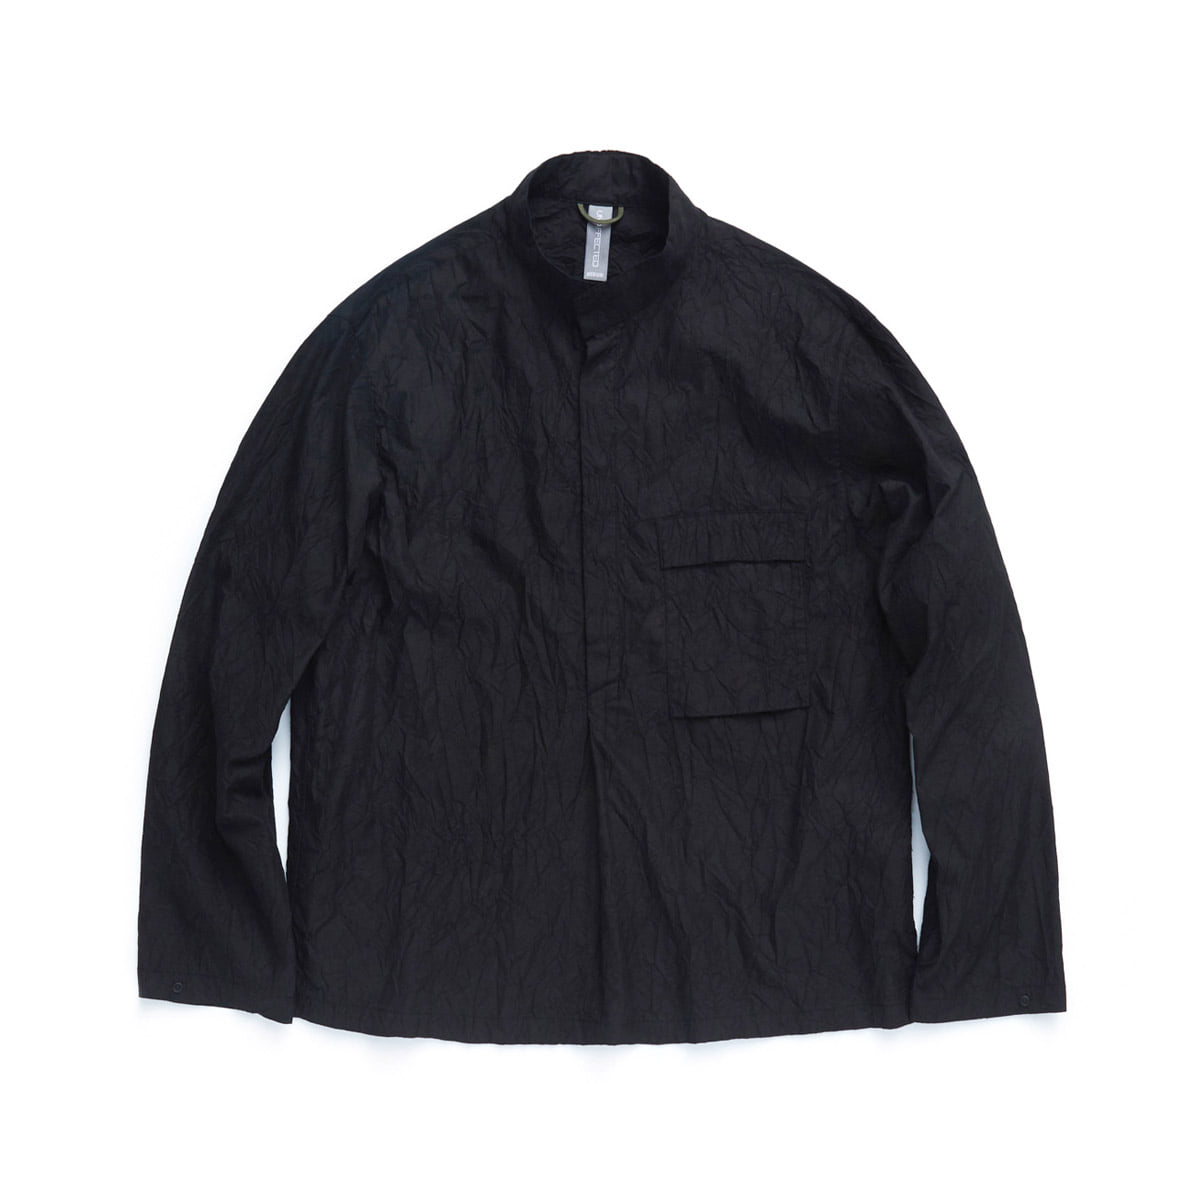 [UNAFFECTED] MOCKNECK SHIRT 'BLACK'